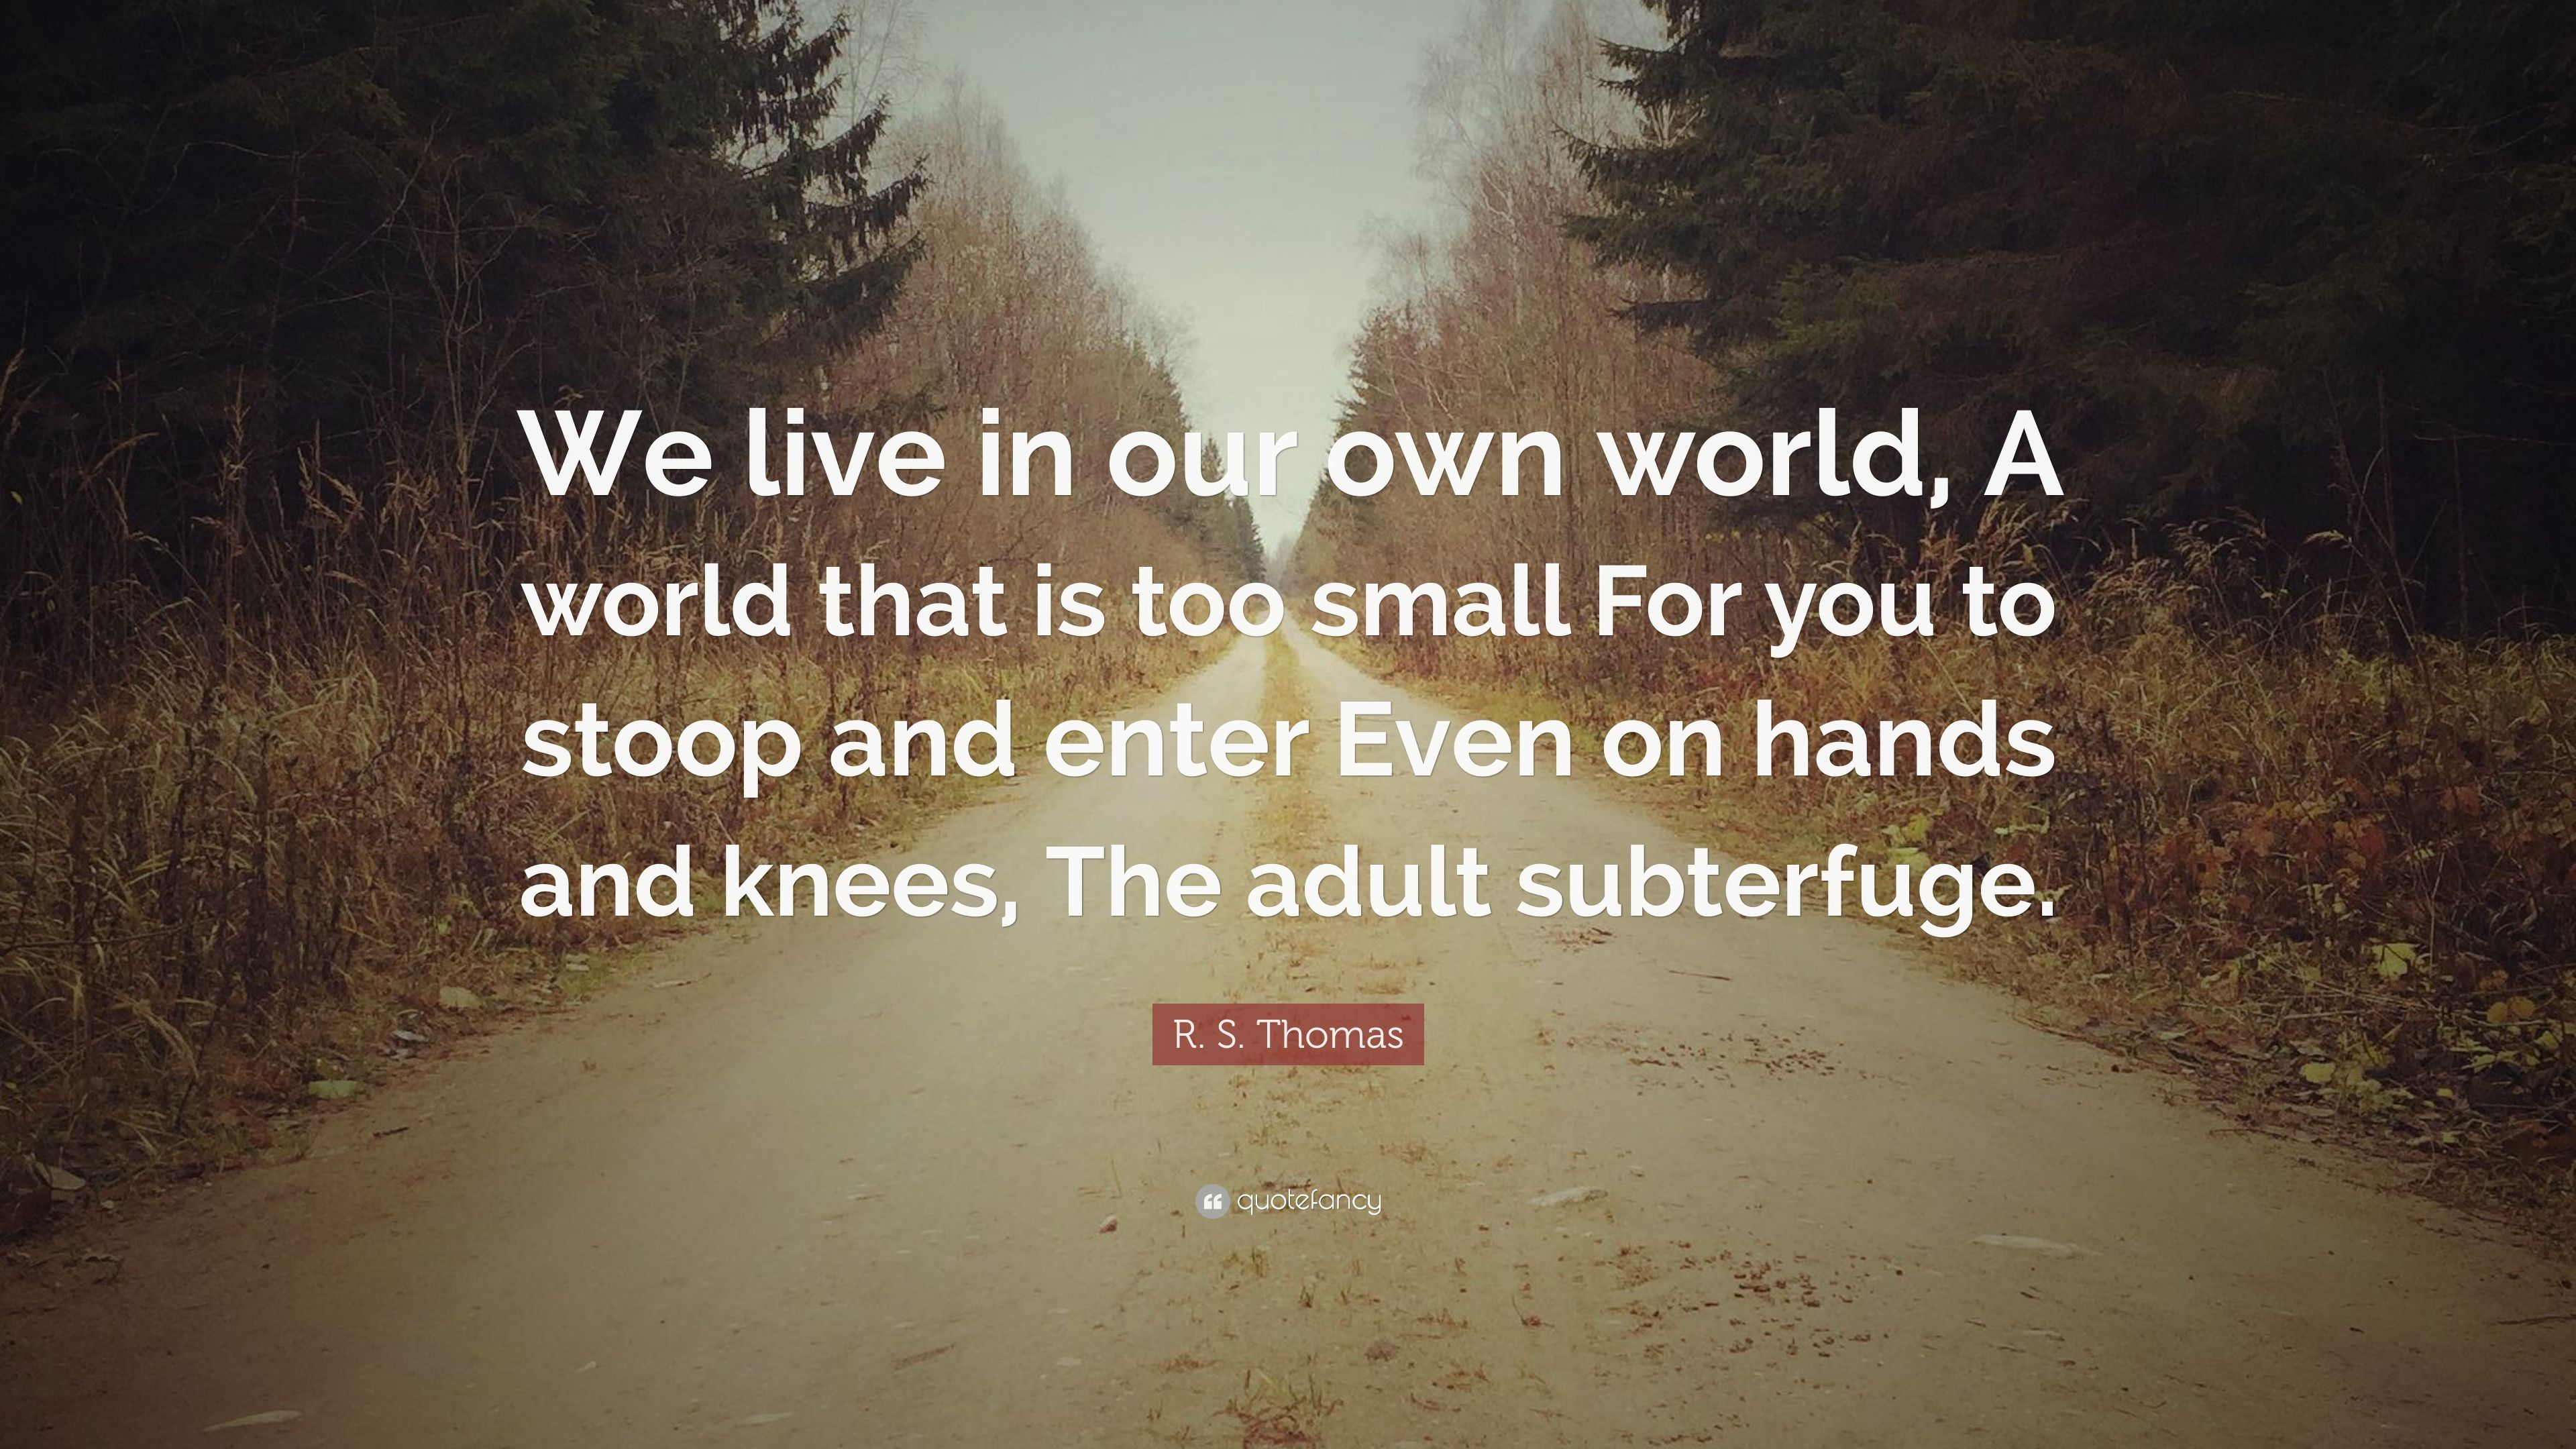 R S Thomas Quote We Live In Our Own World A World That Is Too